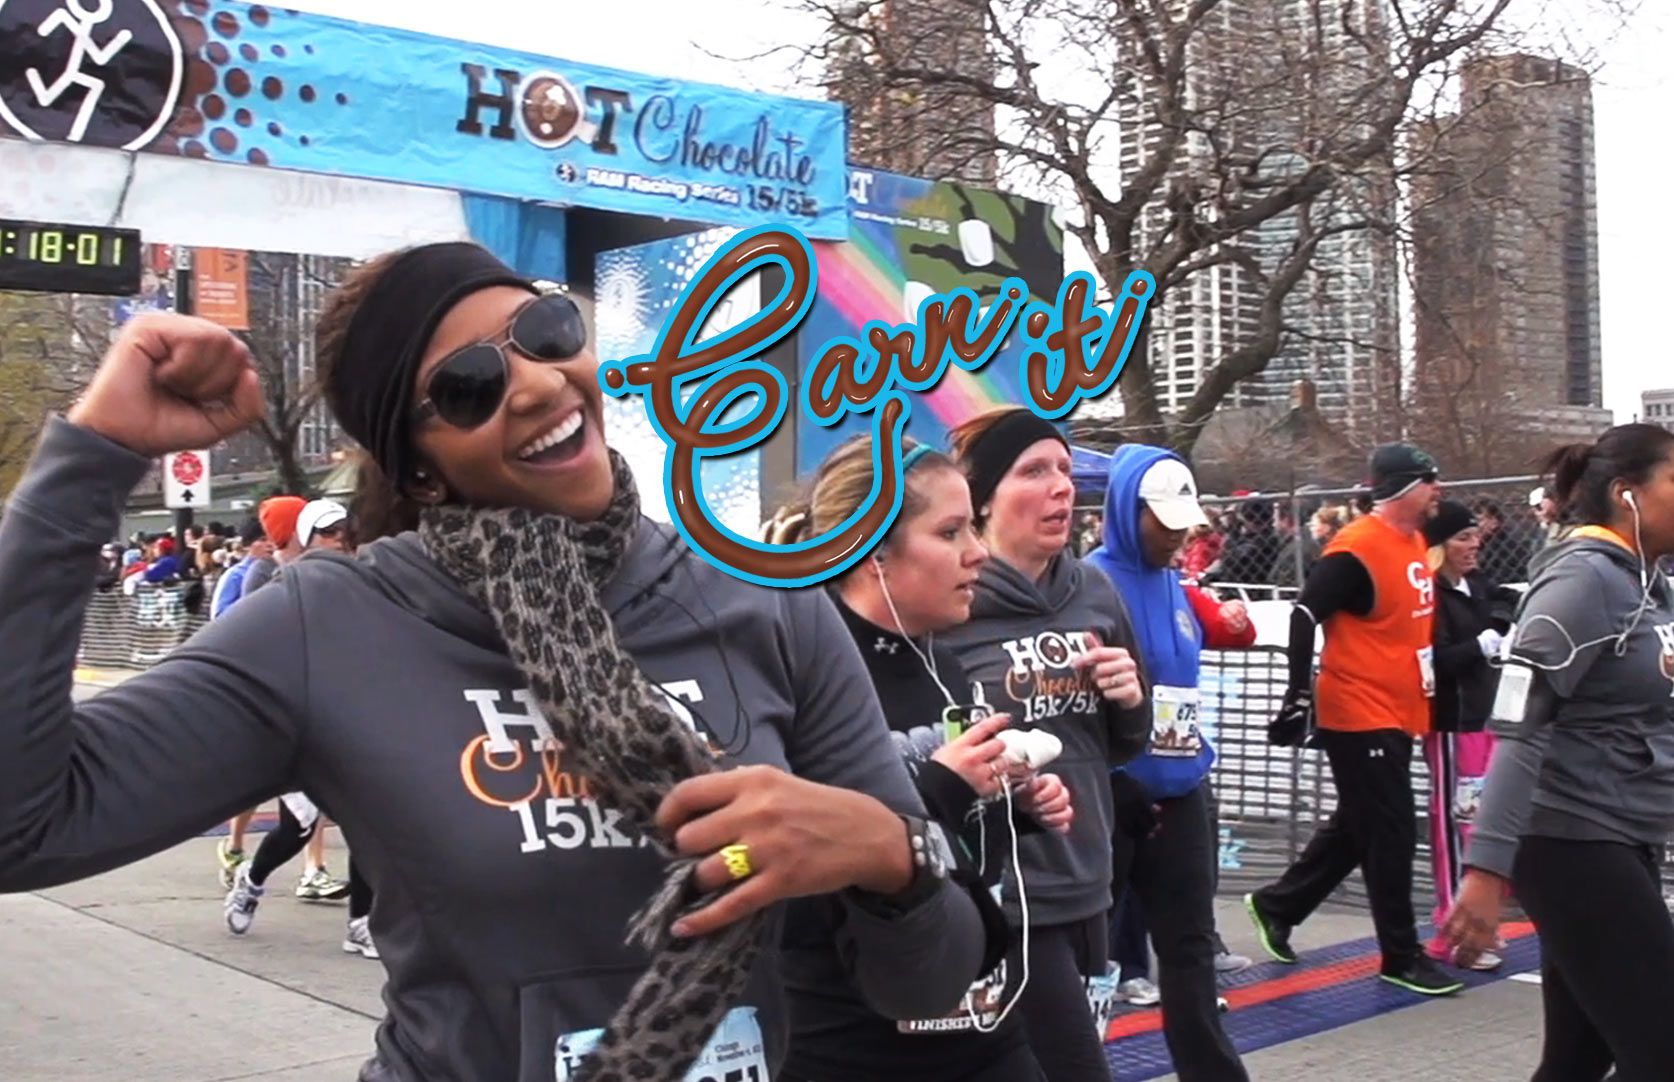 Hot Chocolate 15K – Nashville, TN - Feb. 14th | 2014/2015 Races ...